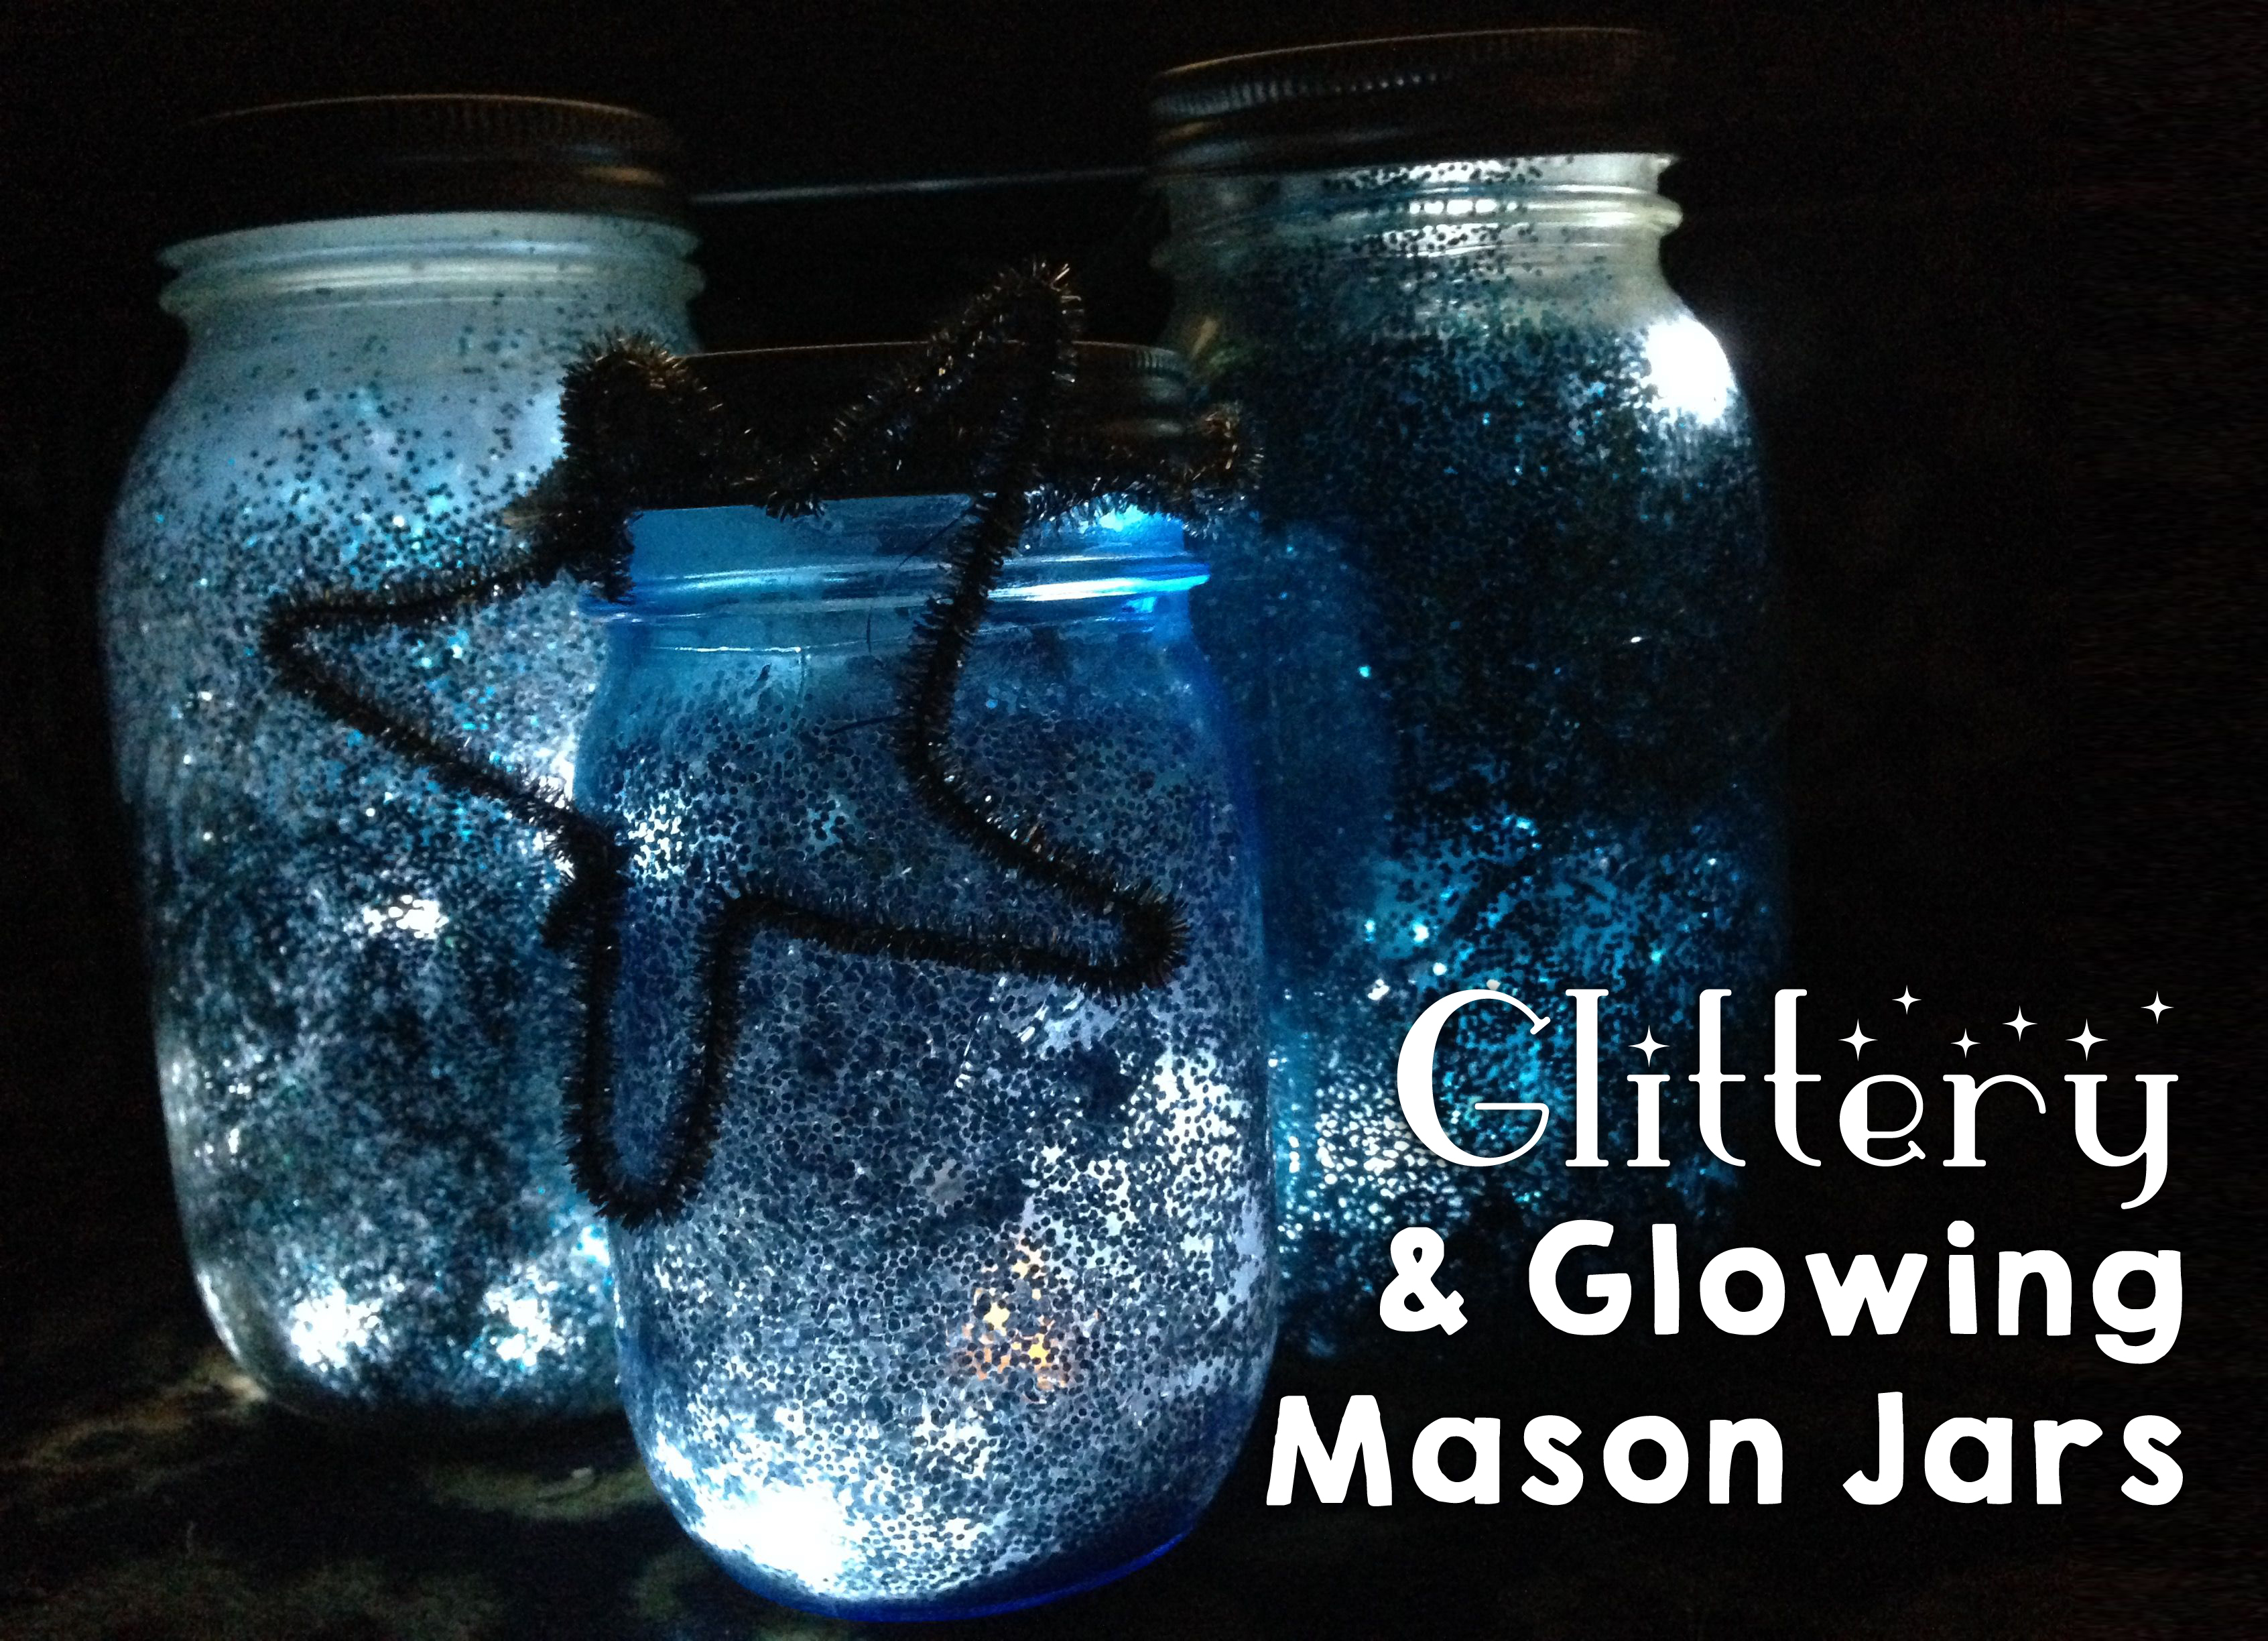 DIY Glittery & Glowing Mason Jars - FabKids Guest Post